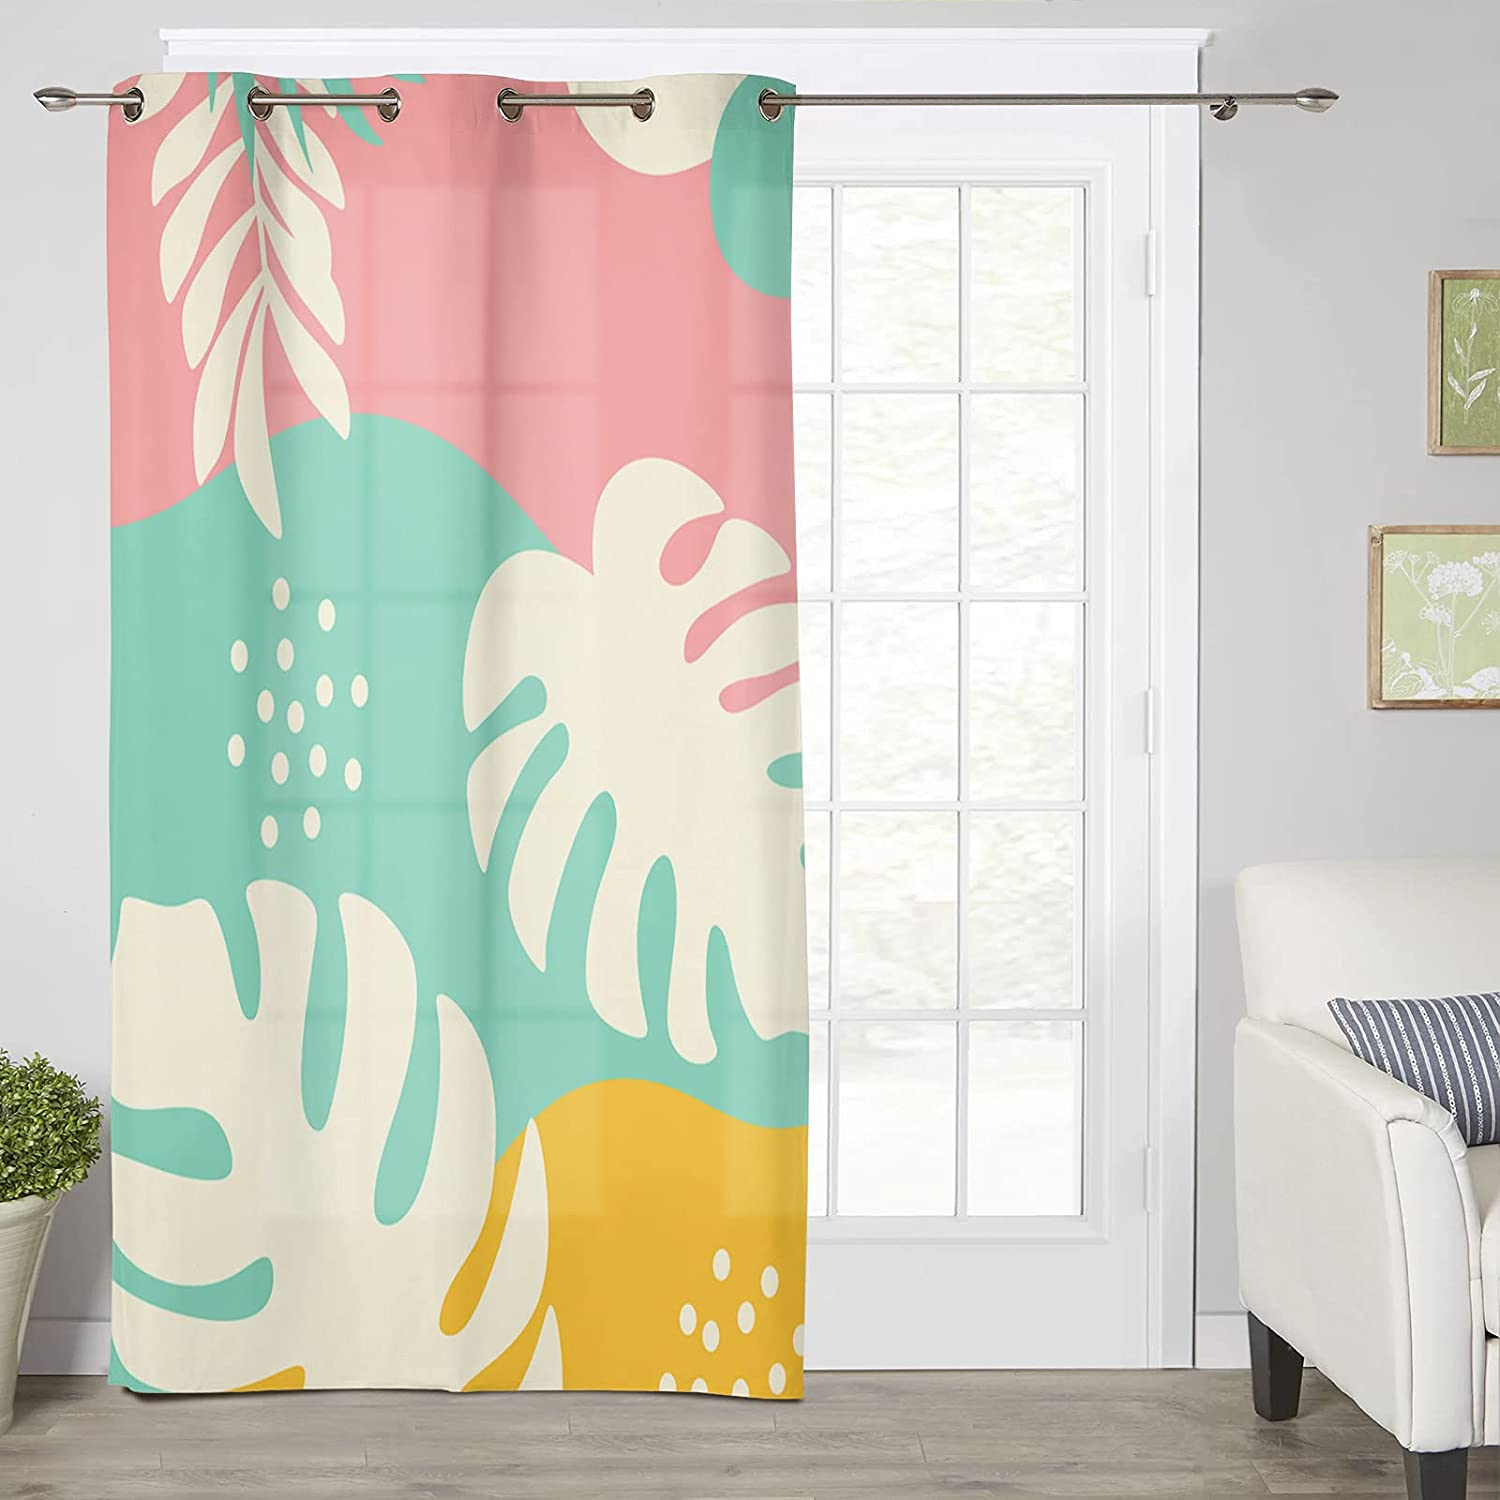 Thermal Insulated Award Window Price reduction Curtain Abstract Leaves Art Tropical Mi